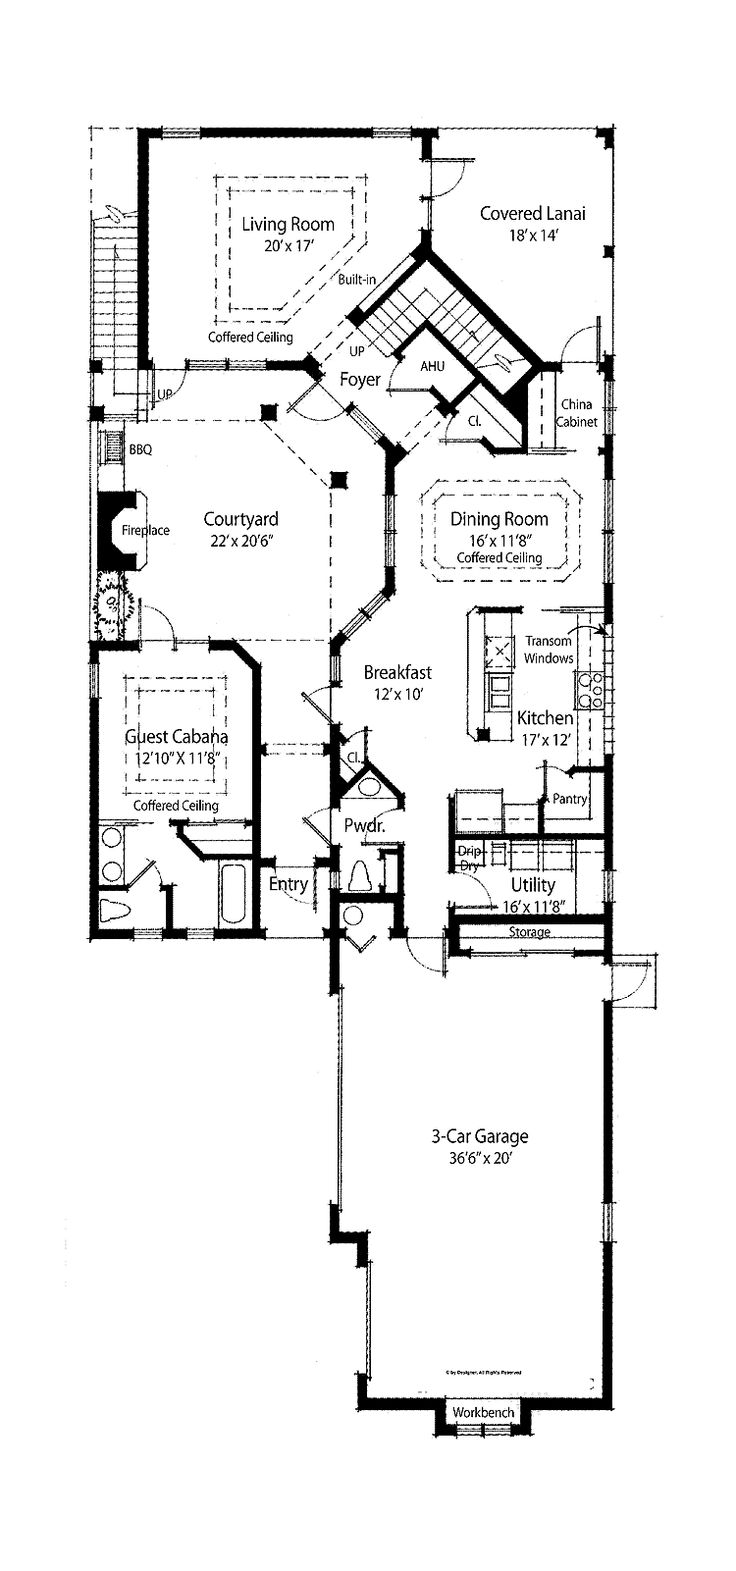 51 best bauplane images on pinterest architecture floor plans floor plans 2 story mediterranean home with 4 bedrooms 4 bathrooms and total square feet